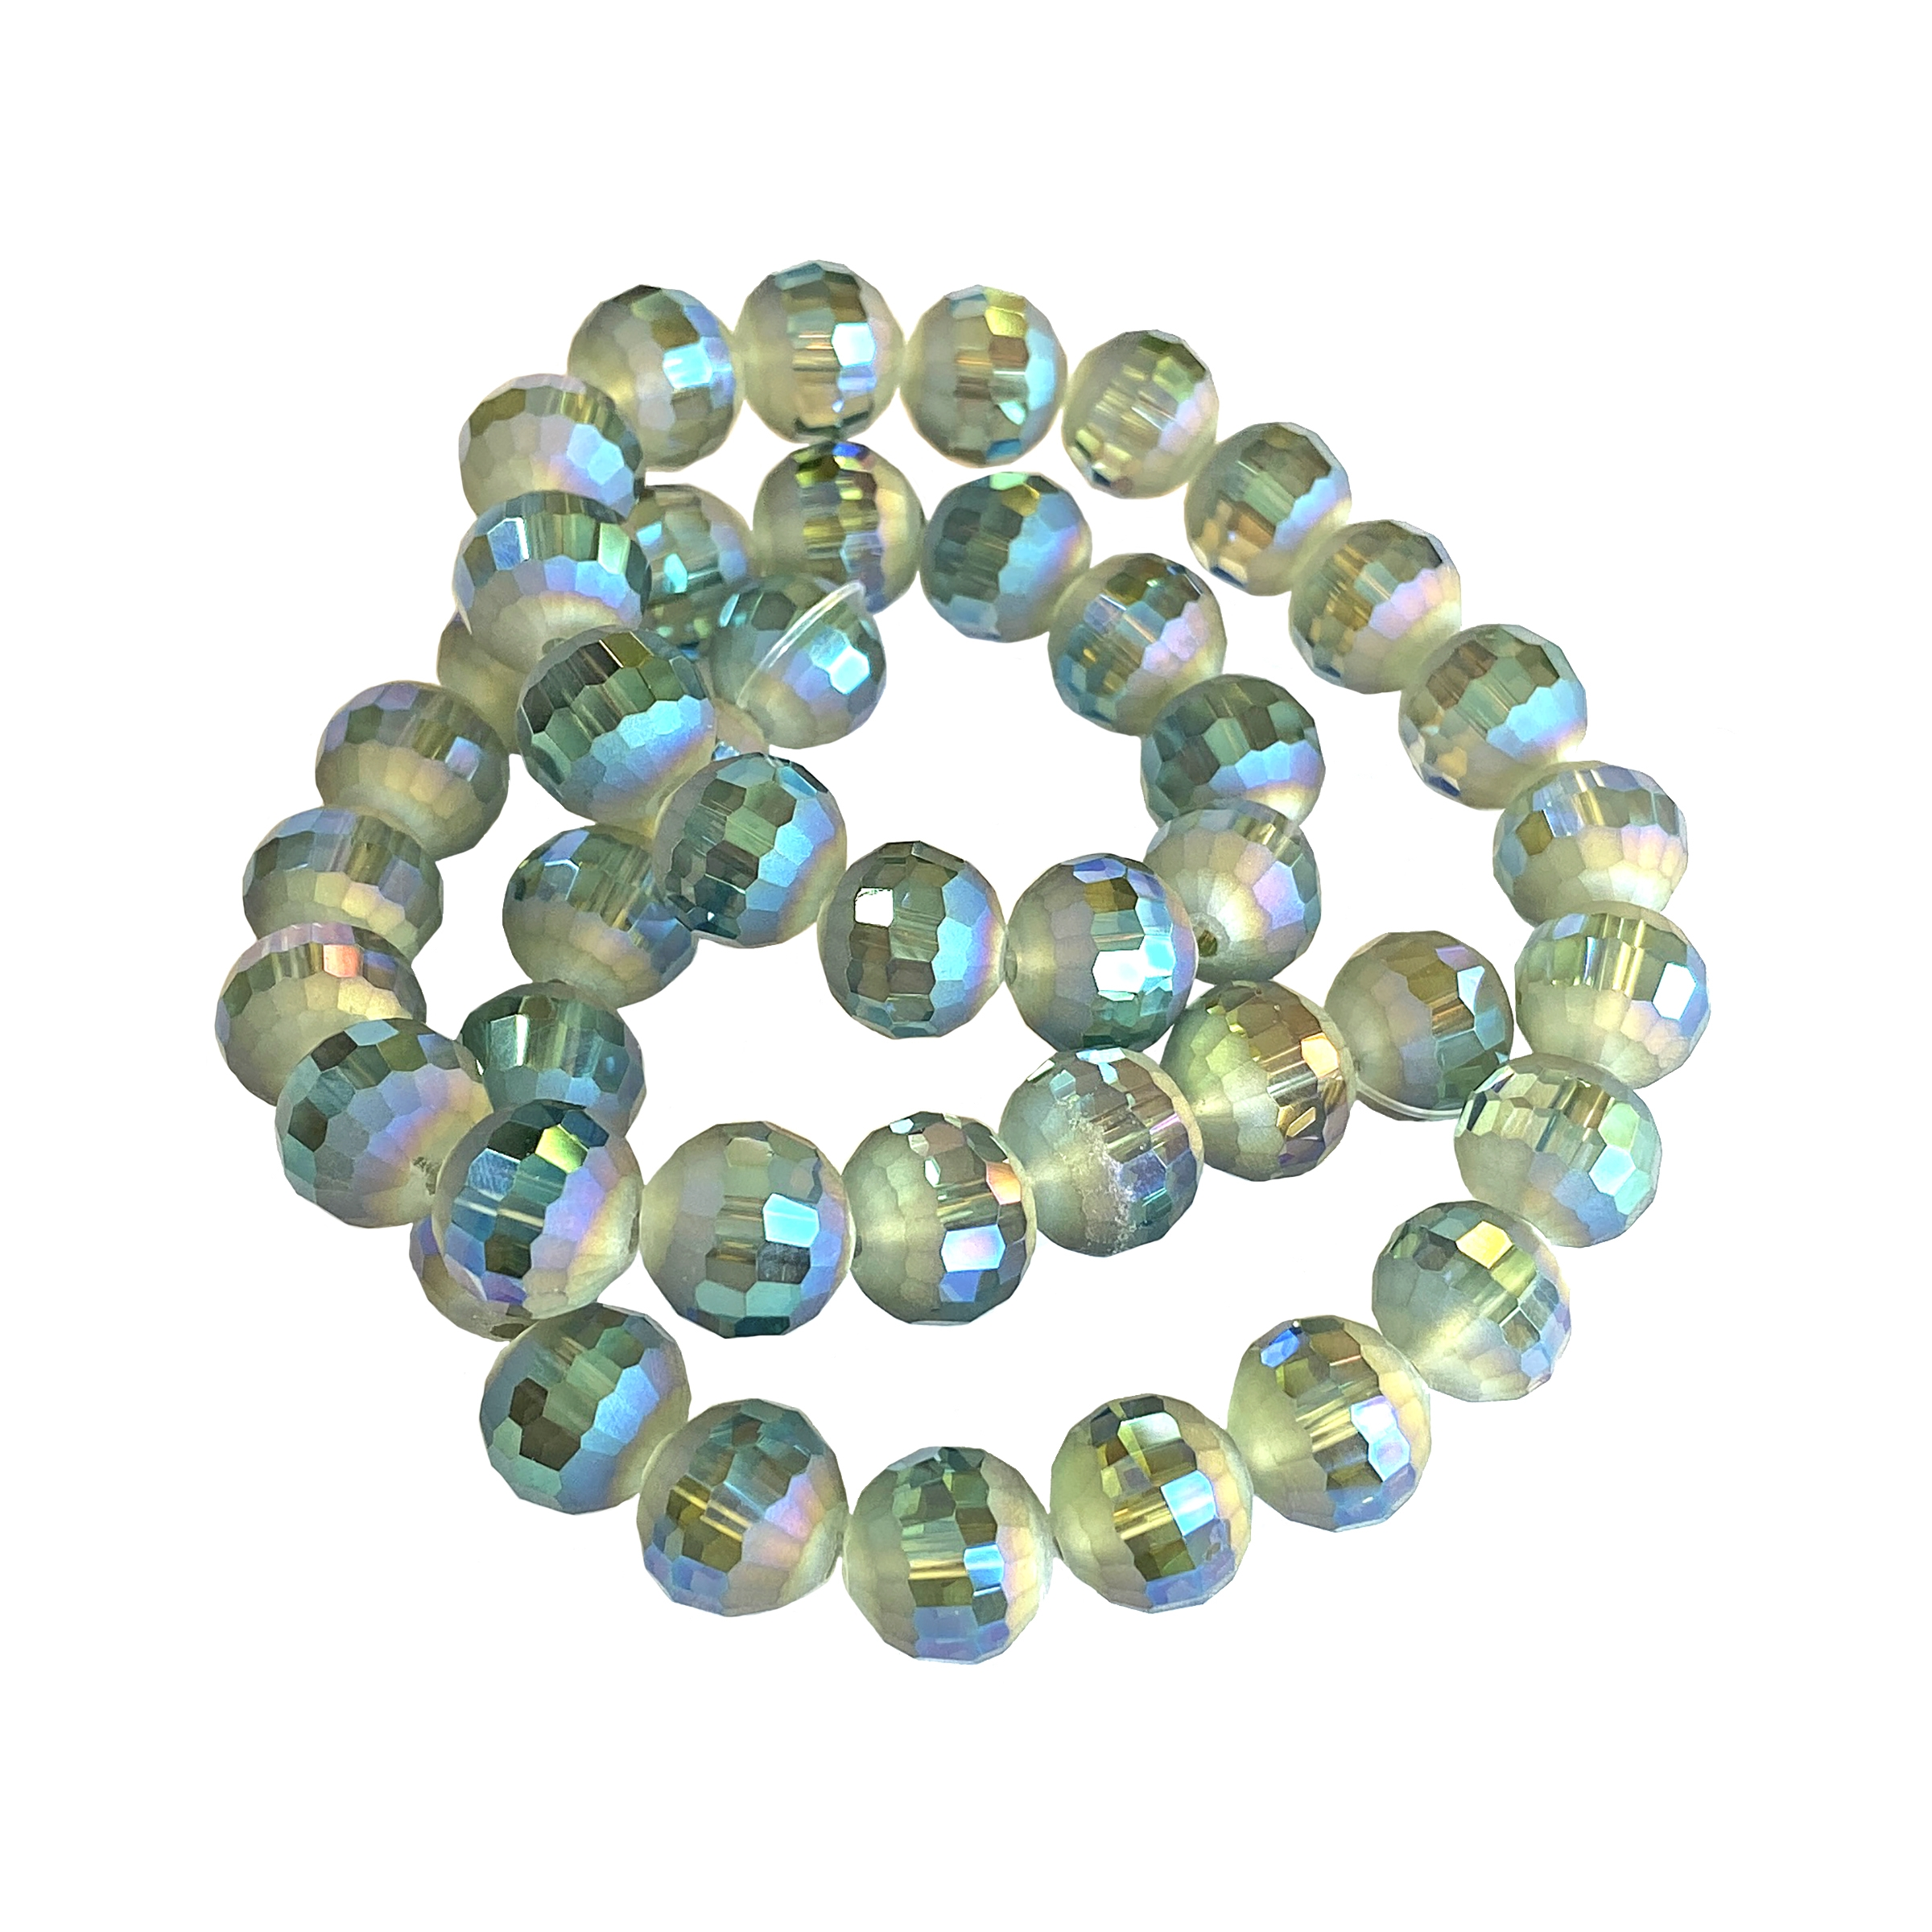 matte blue-green crystal beads, machine cut beads, round beads, glass beads, beads, blue-green beads, crystal beads, faceted, bead, glass, US-made,  B'sue boutiques, jewelry making, jewelry findings, vintage supplies, beading supplies, 10mm, 01248